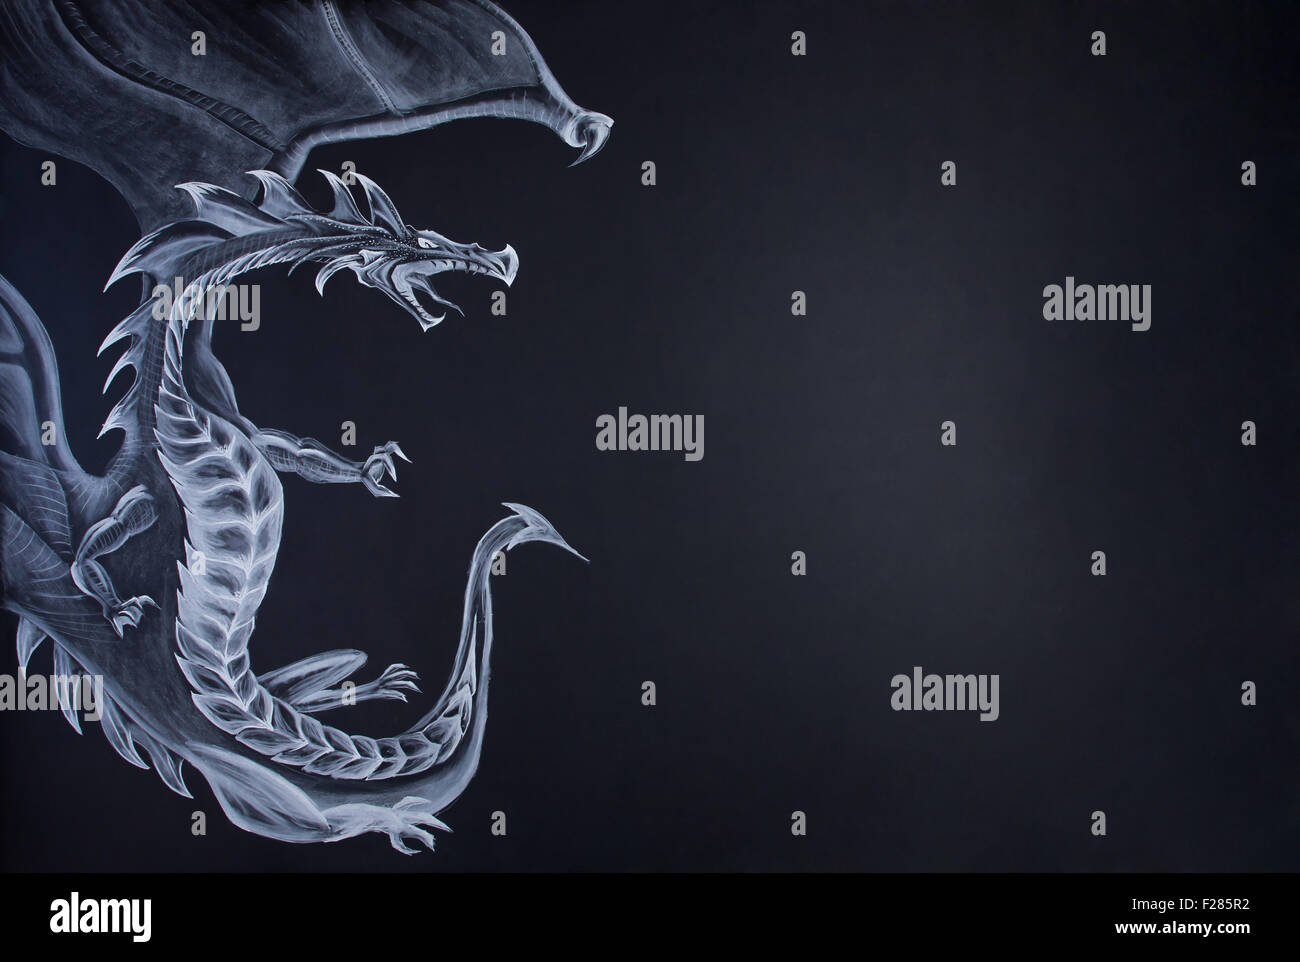 Farytale dragon draw with chalk on paper. Large copy space on right. - Stock Image